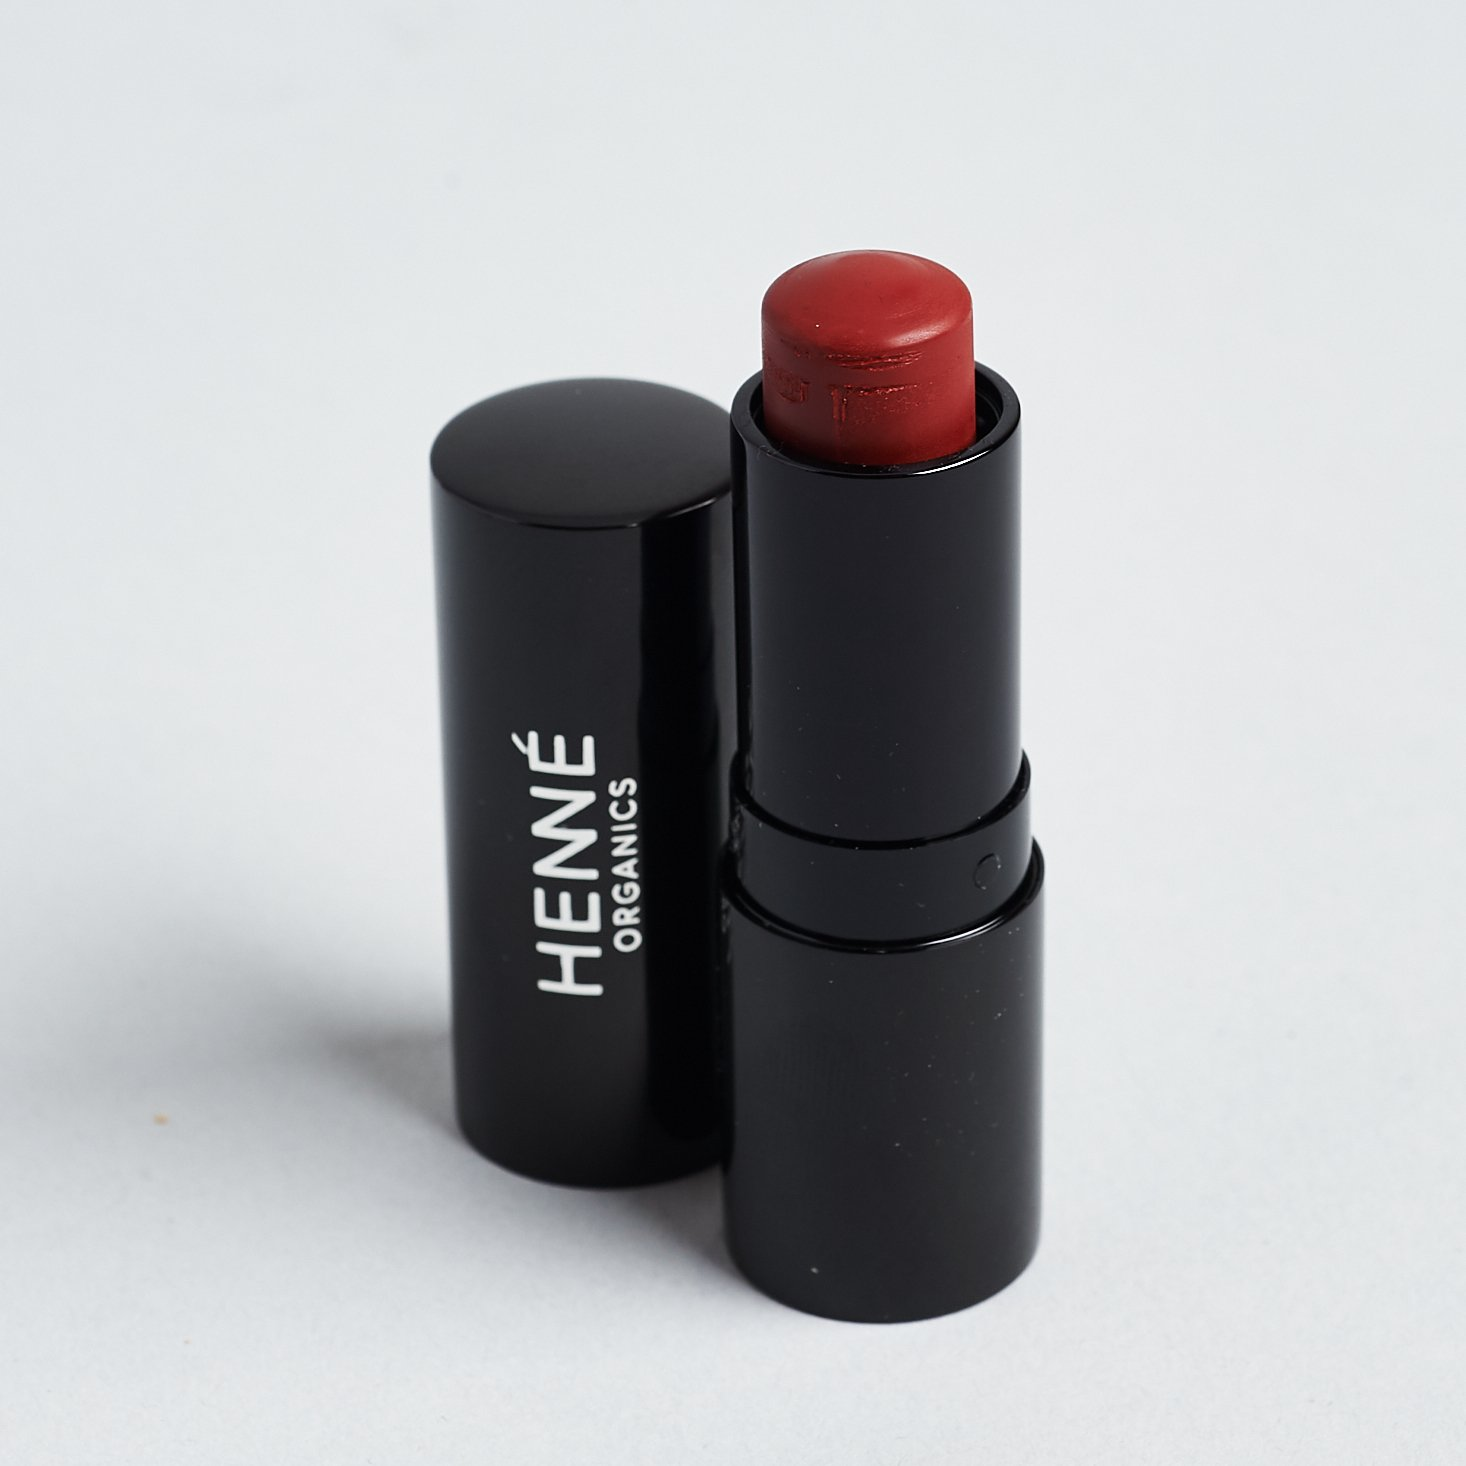 """Henne Organics Luxury Lip Tint in """"Intrigue"""" with lid off"""